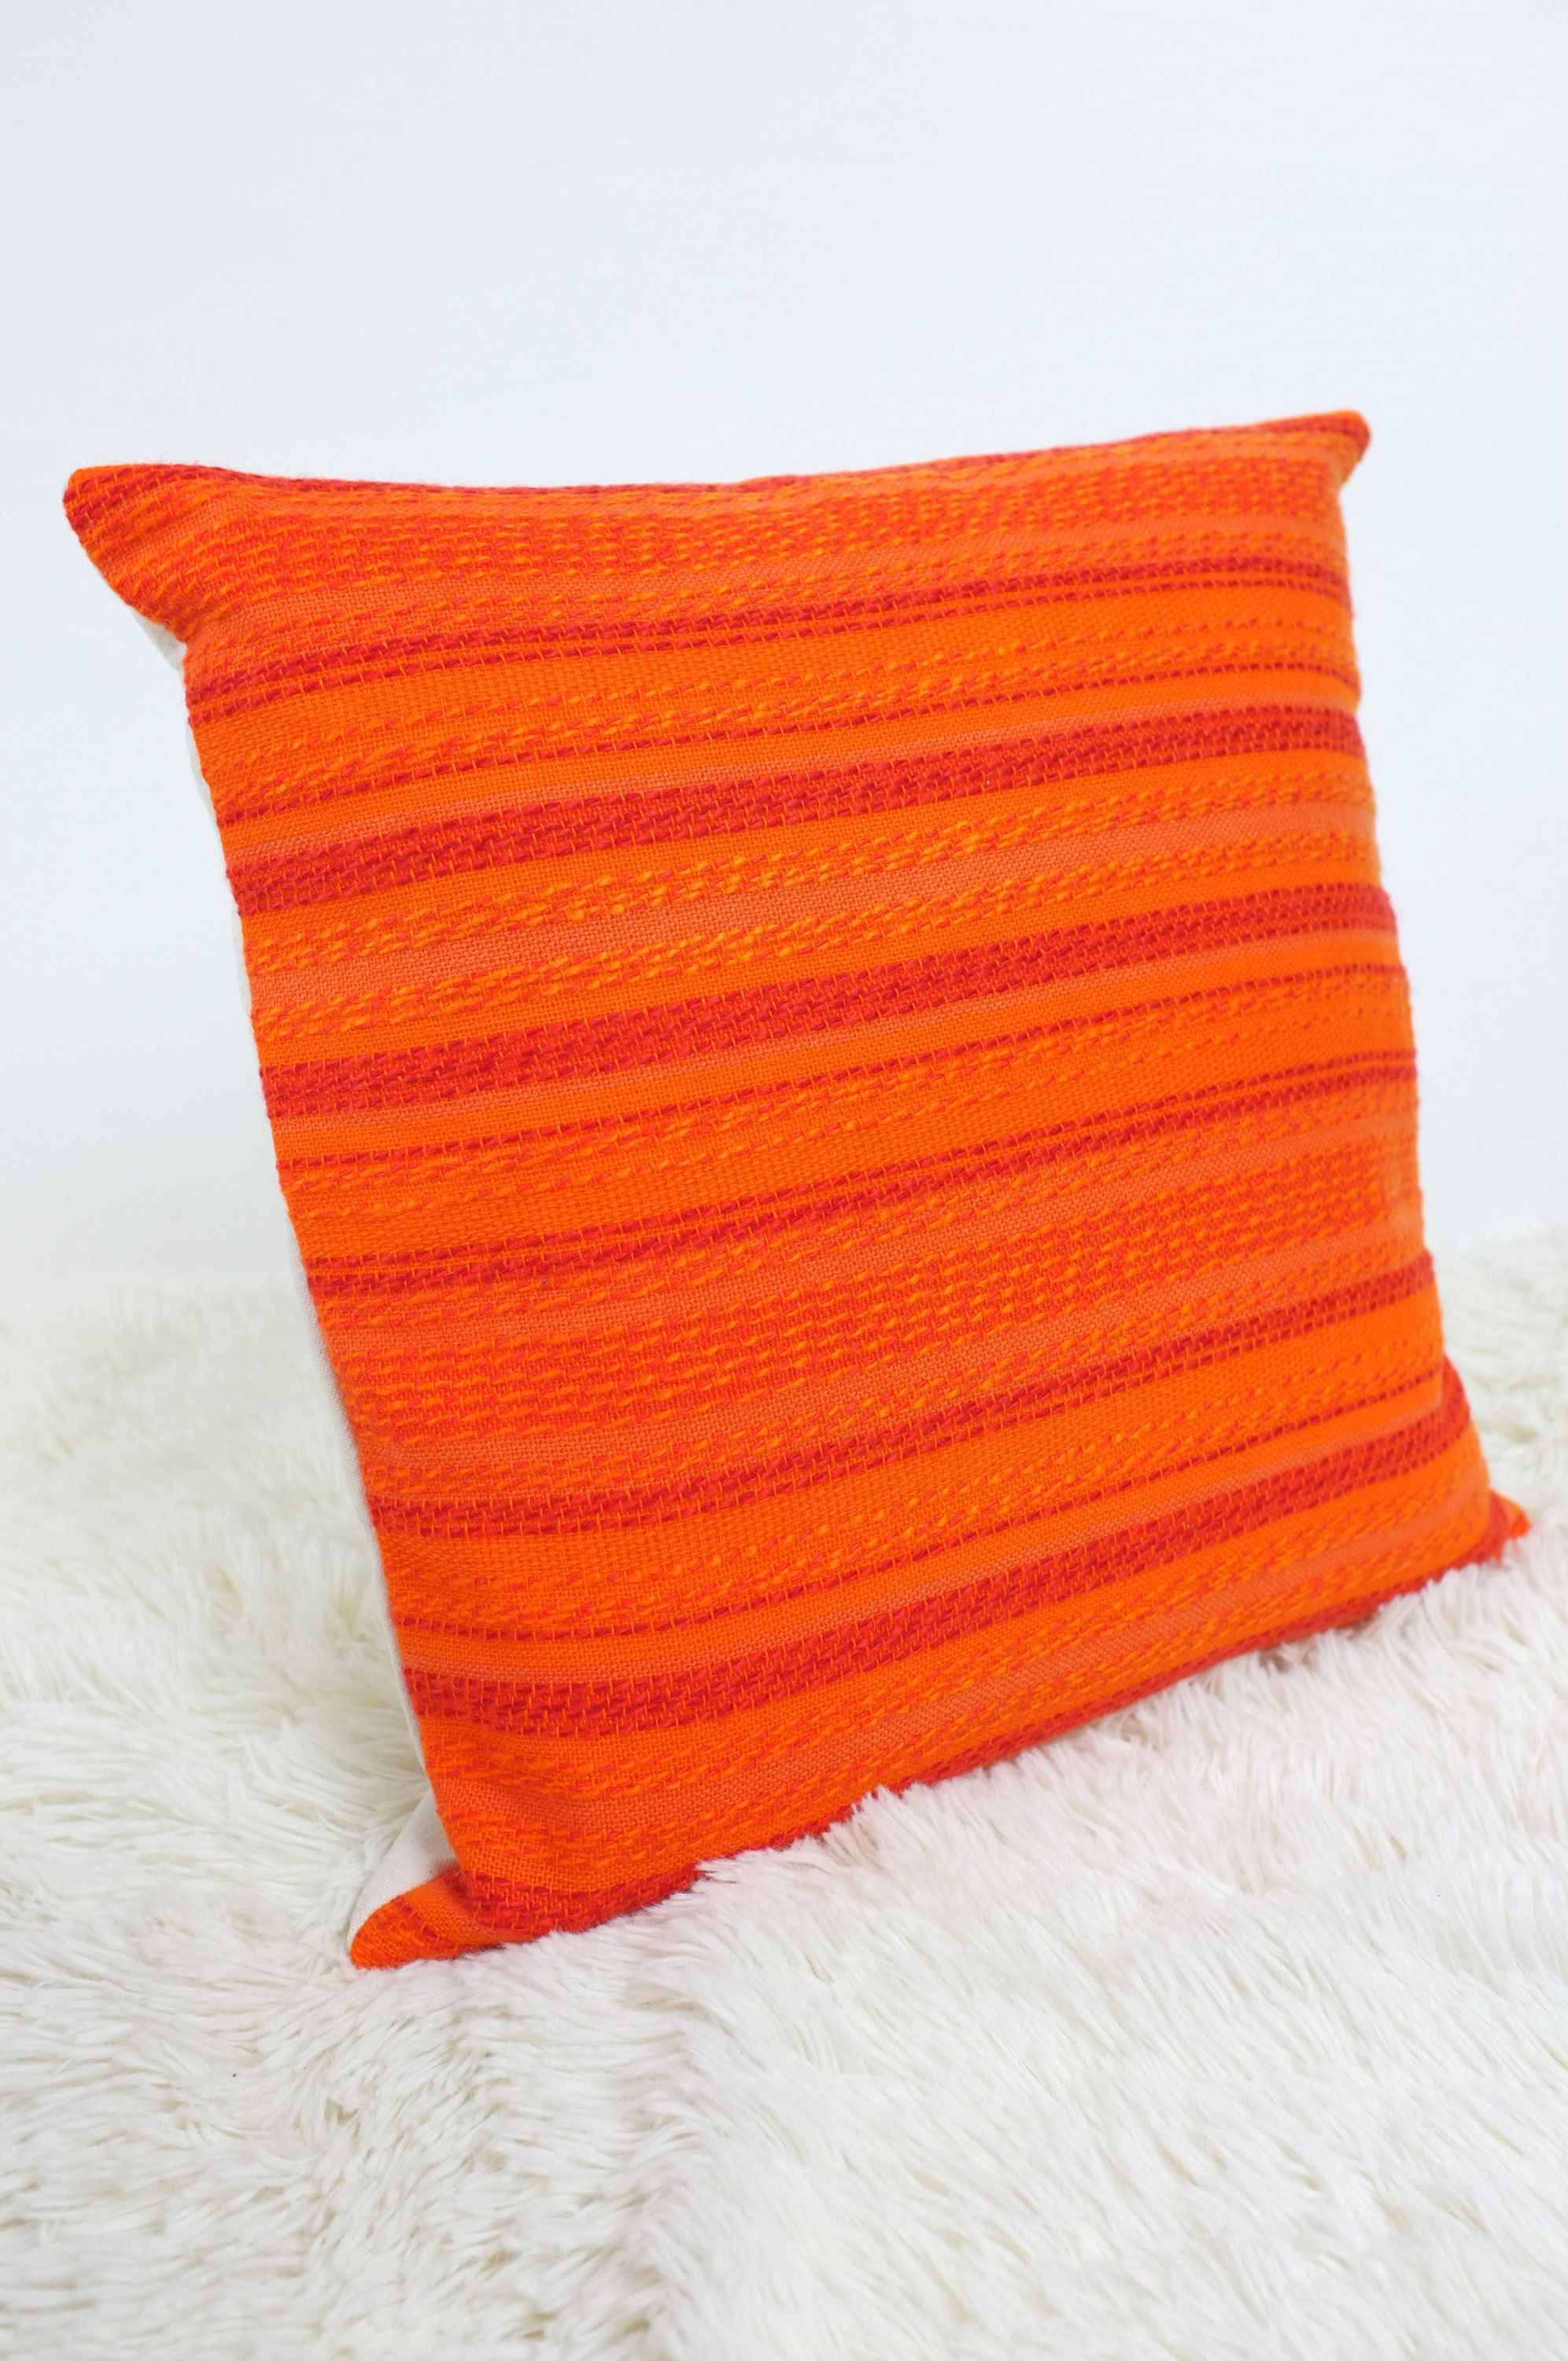 Retro Cushions Retro Cushion Cover Amazing Orange 60s 70s Fabric 16x16